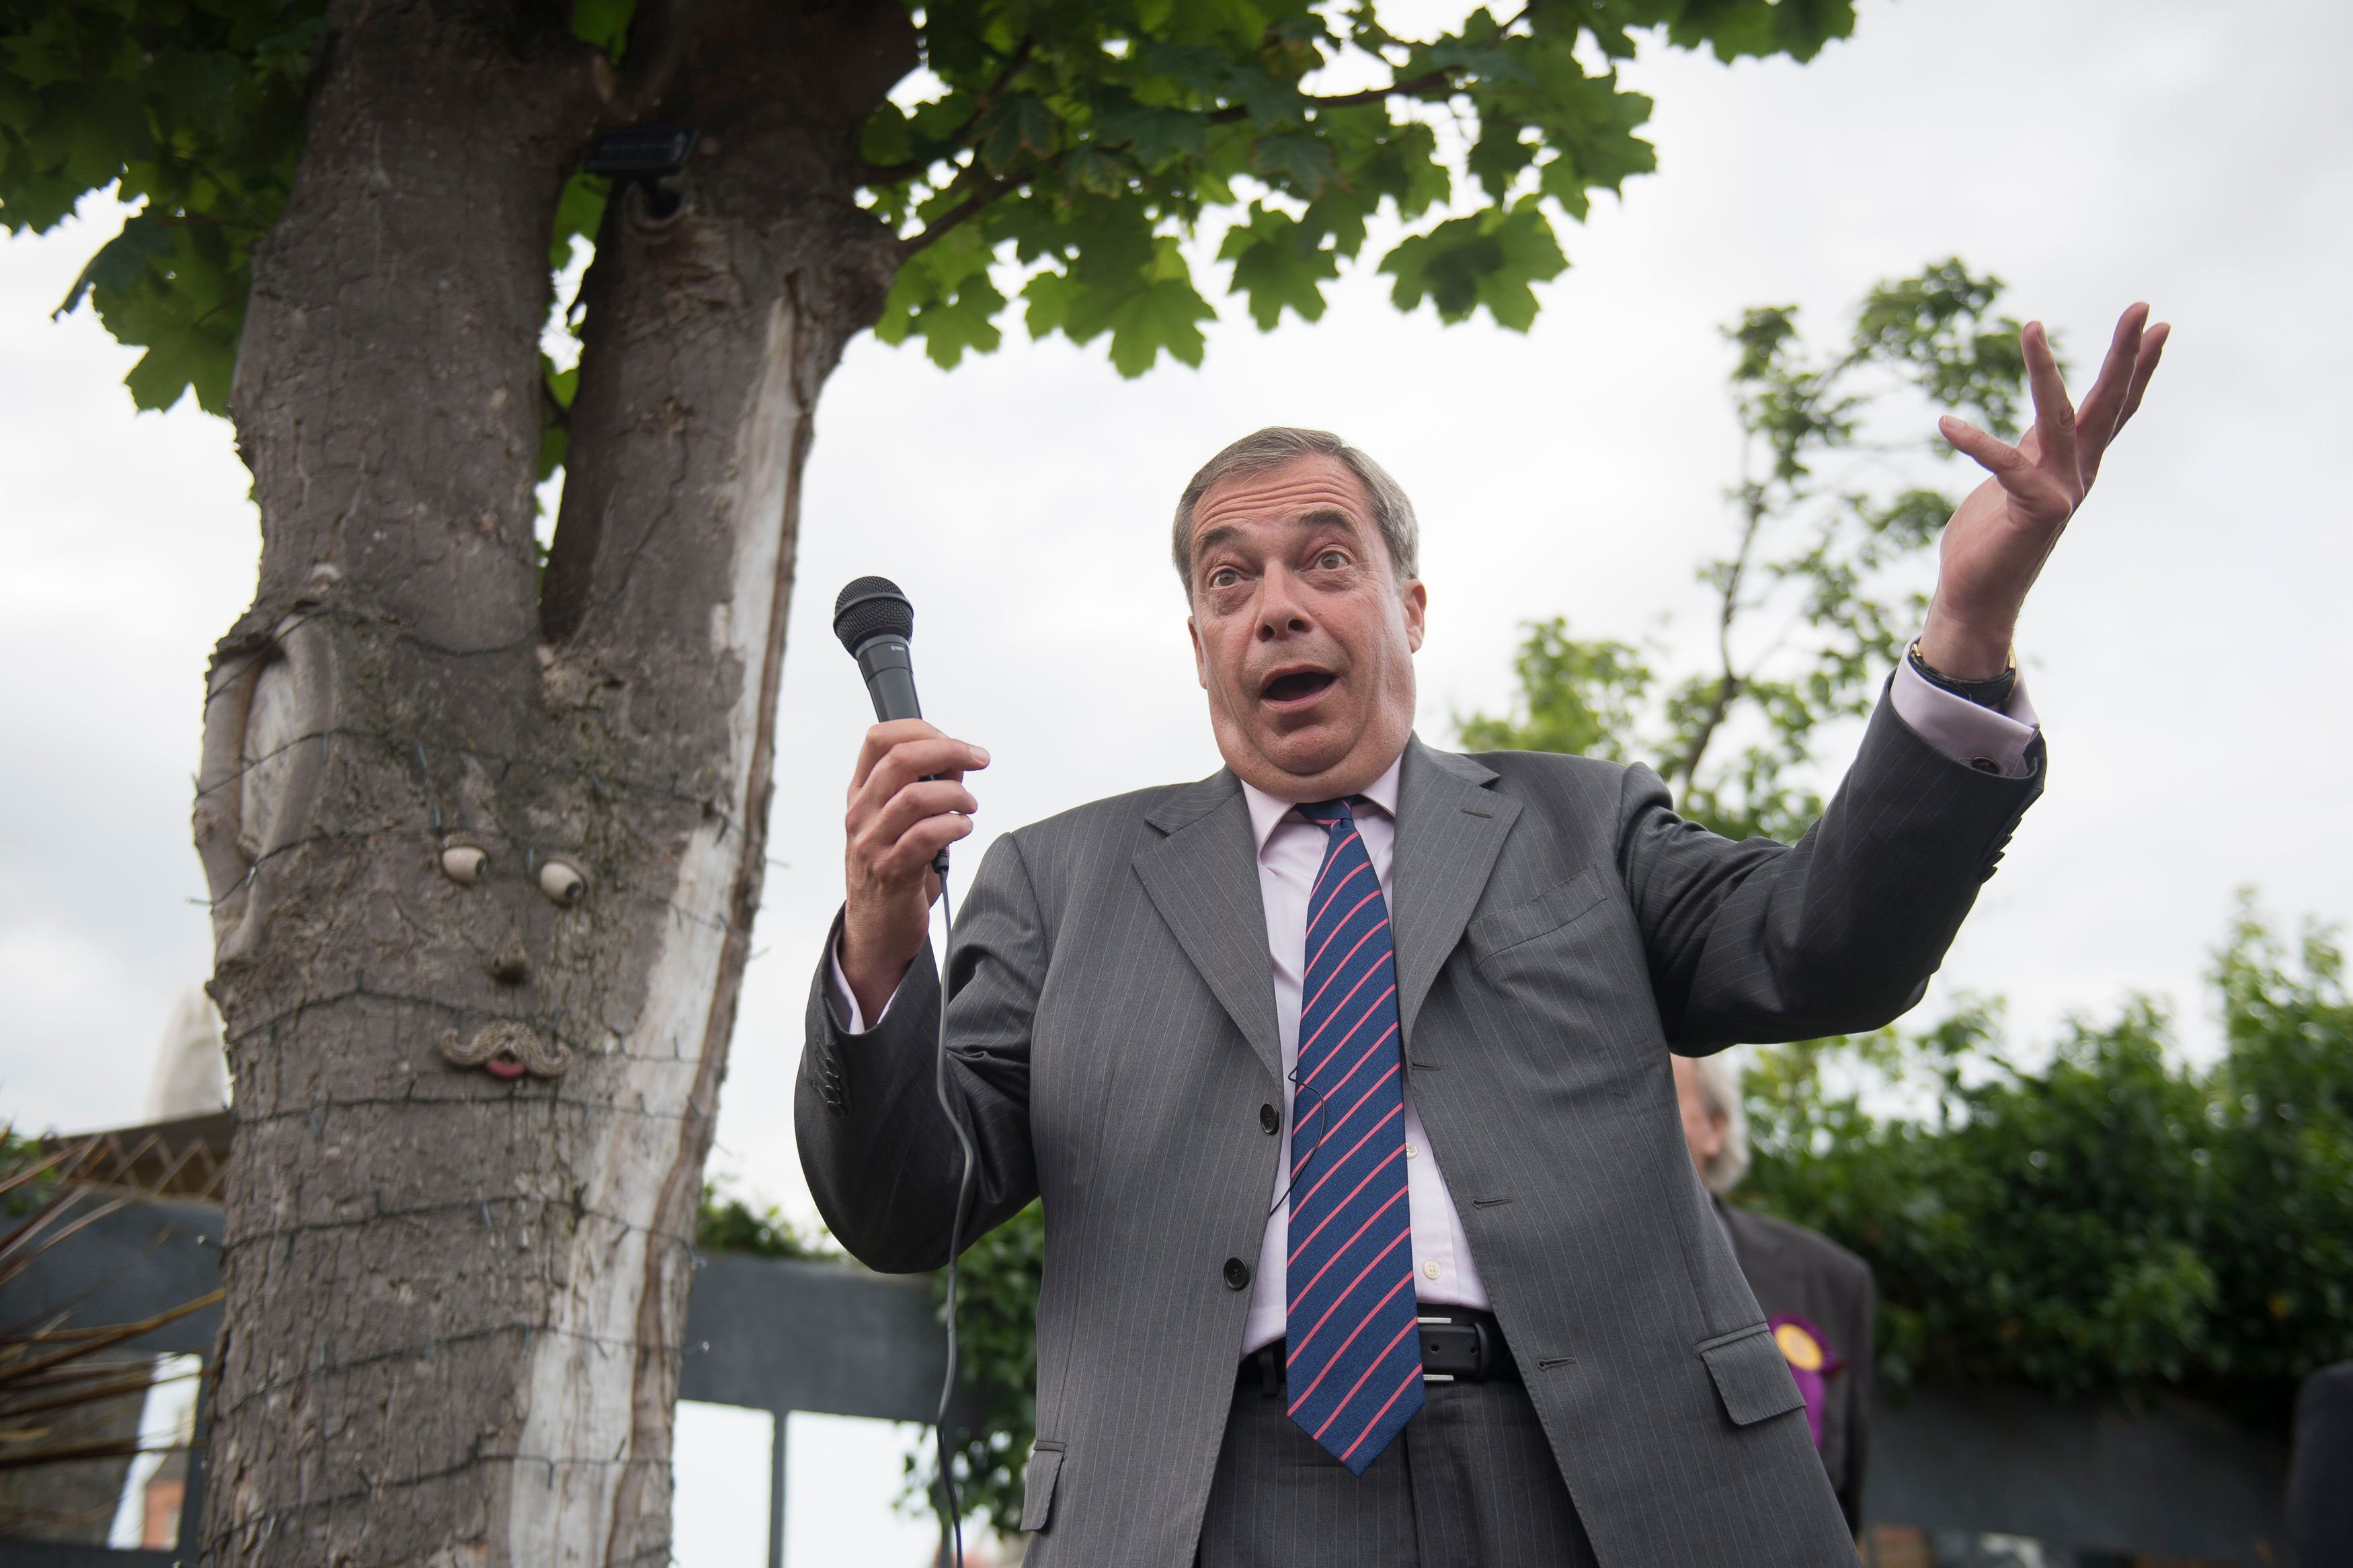 It's not the first time Farage has been linked to the Russia